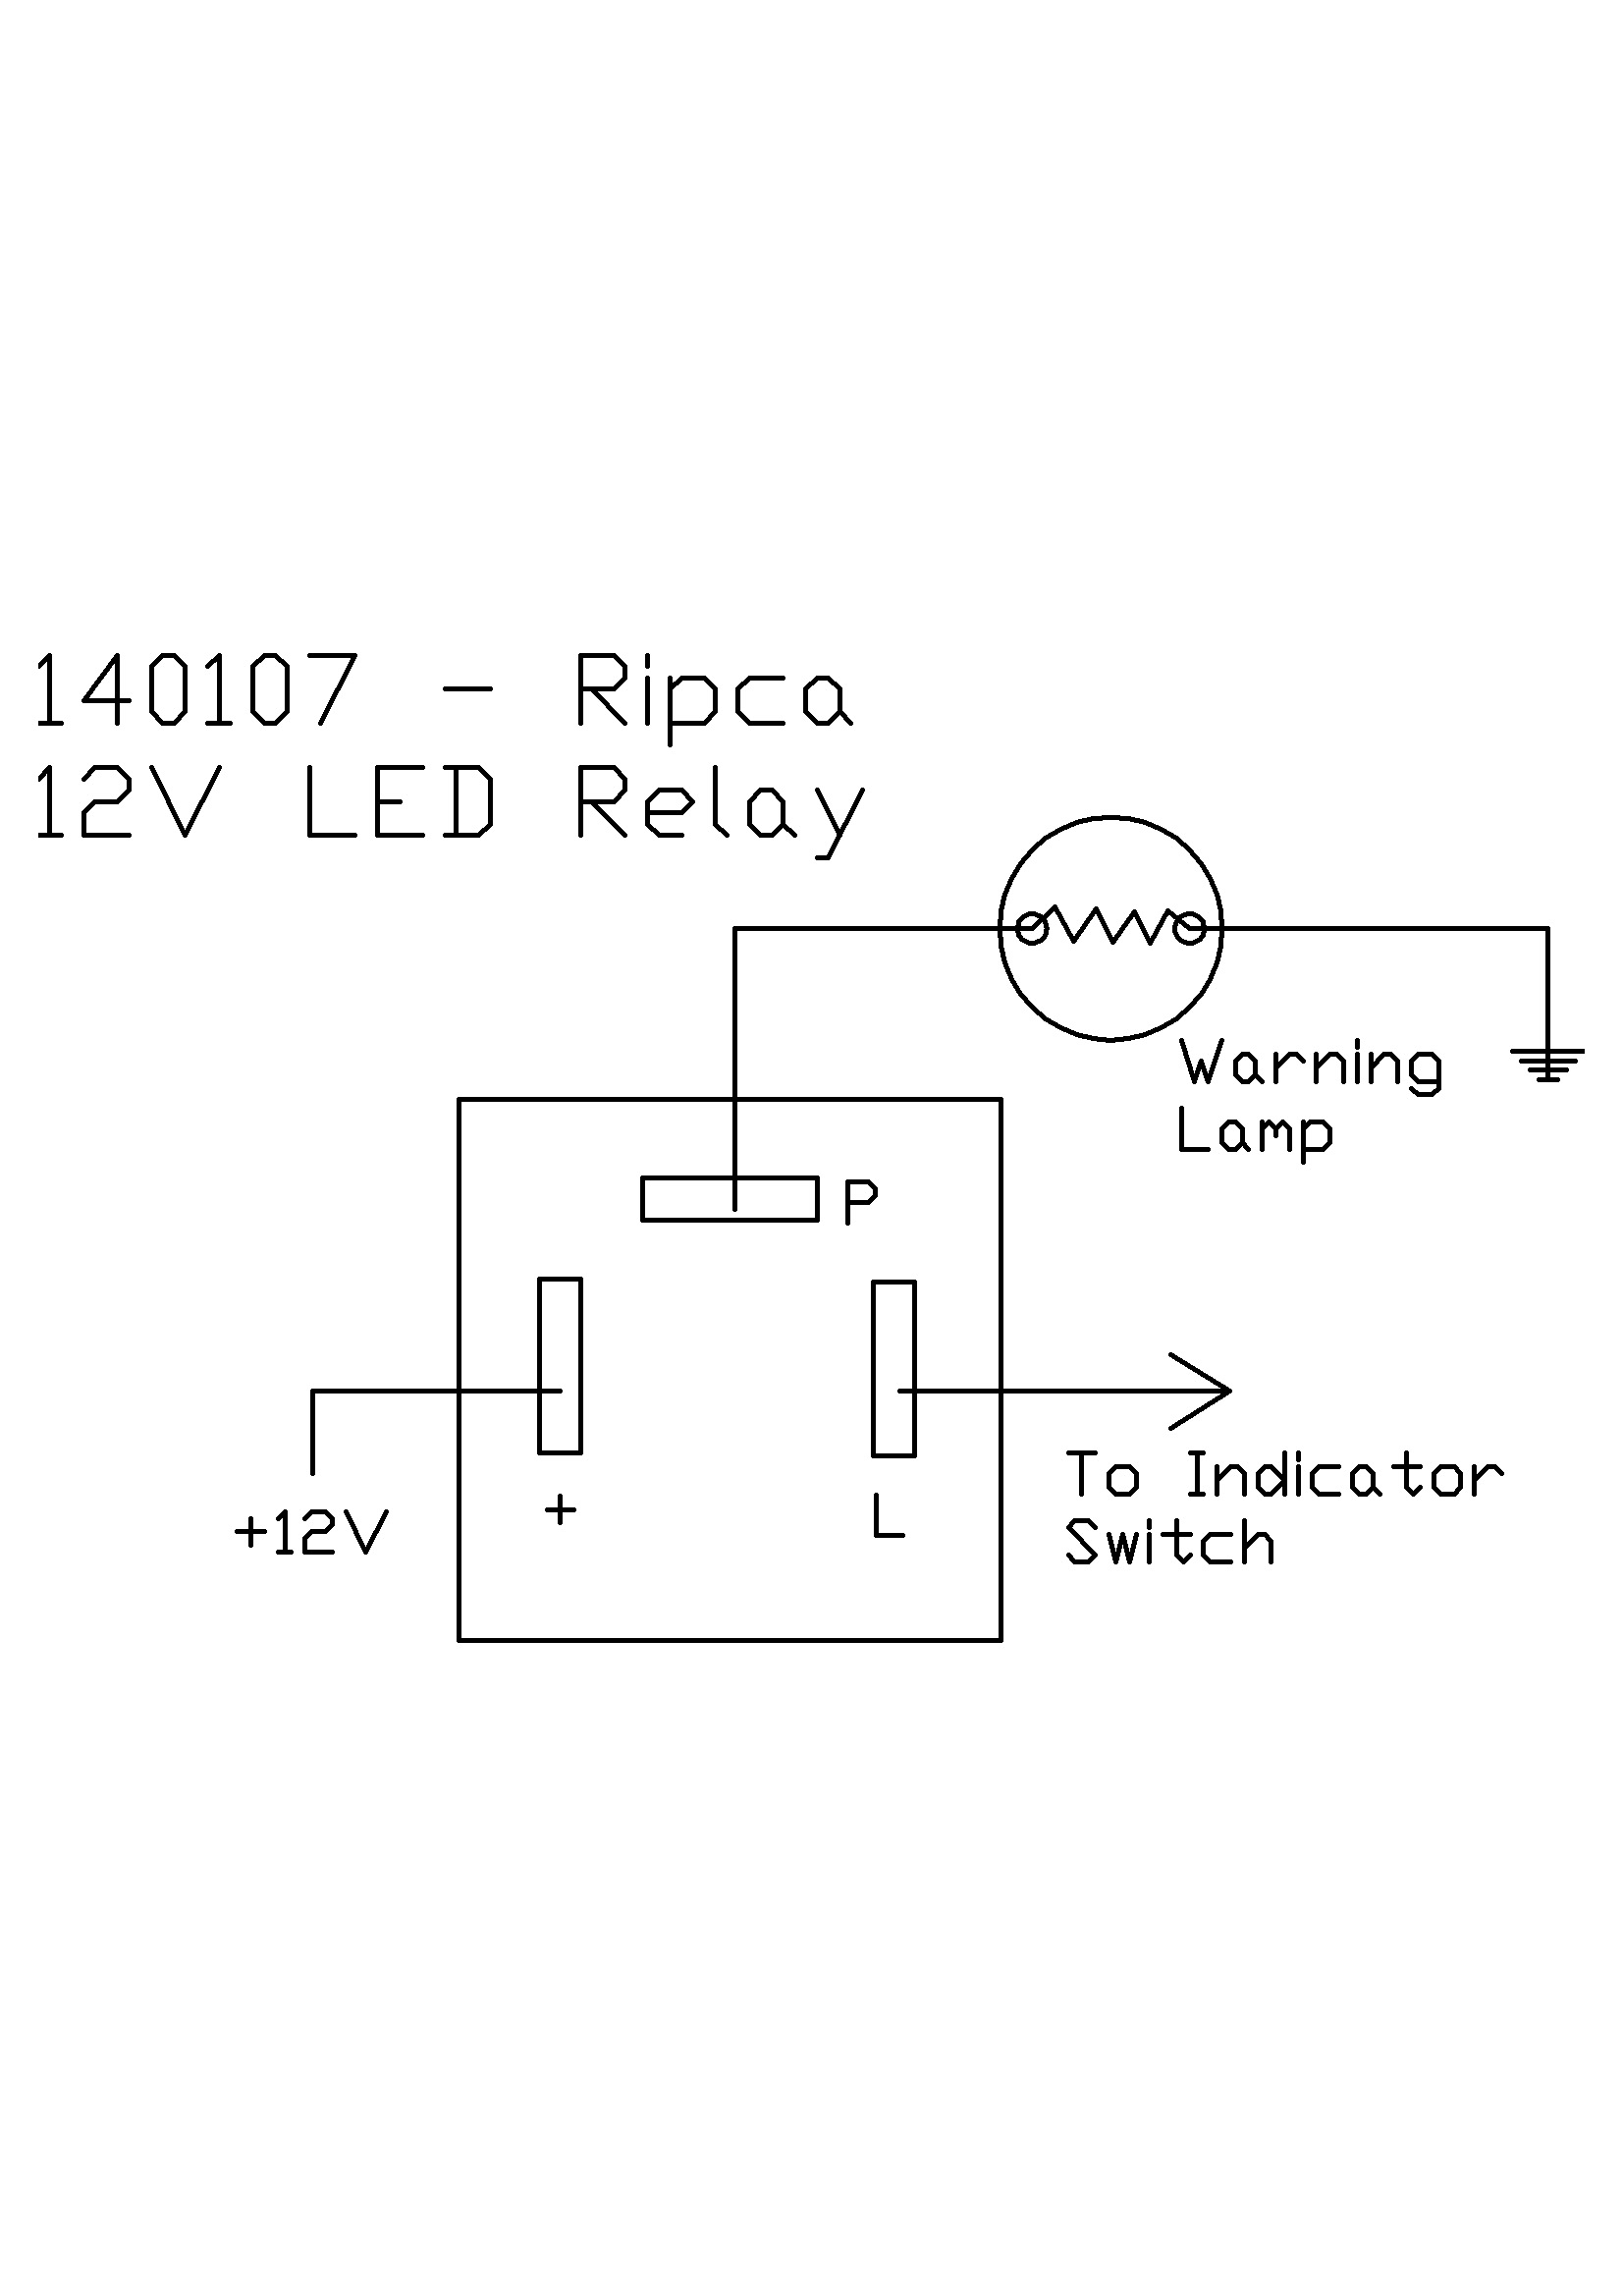 140107 ripca 12 volt led flasher unit flasher unit wiring diagram at eliteediting.co